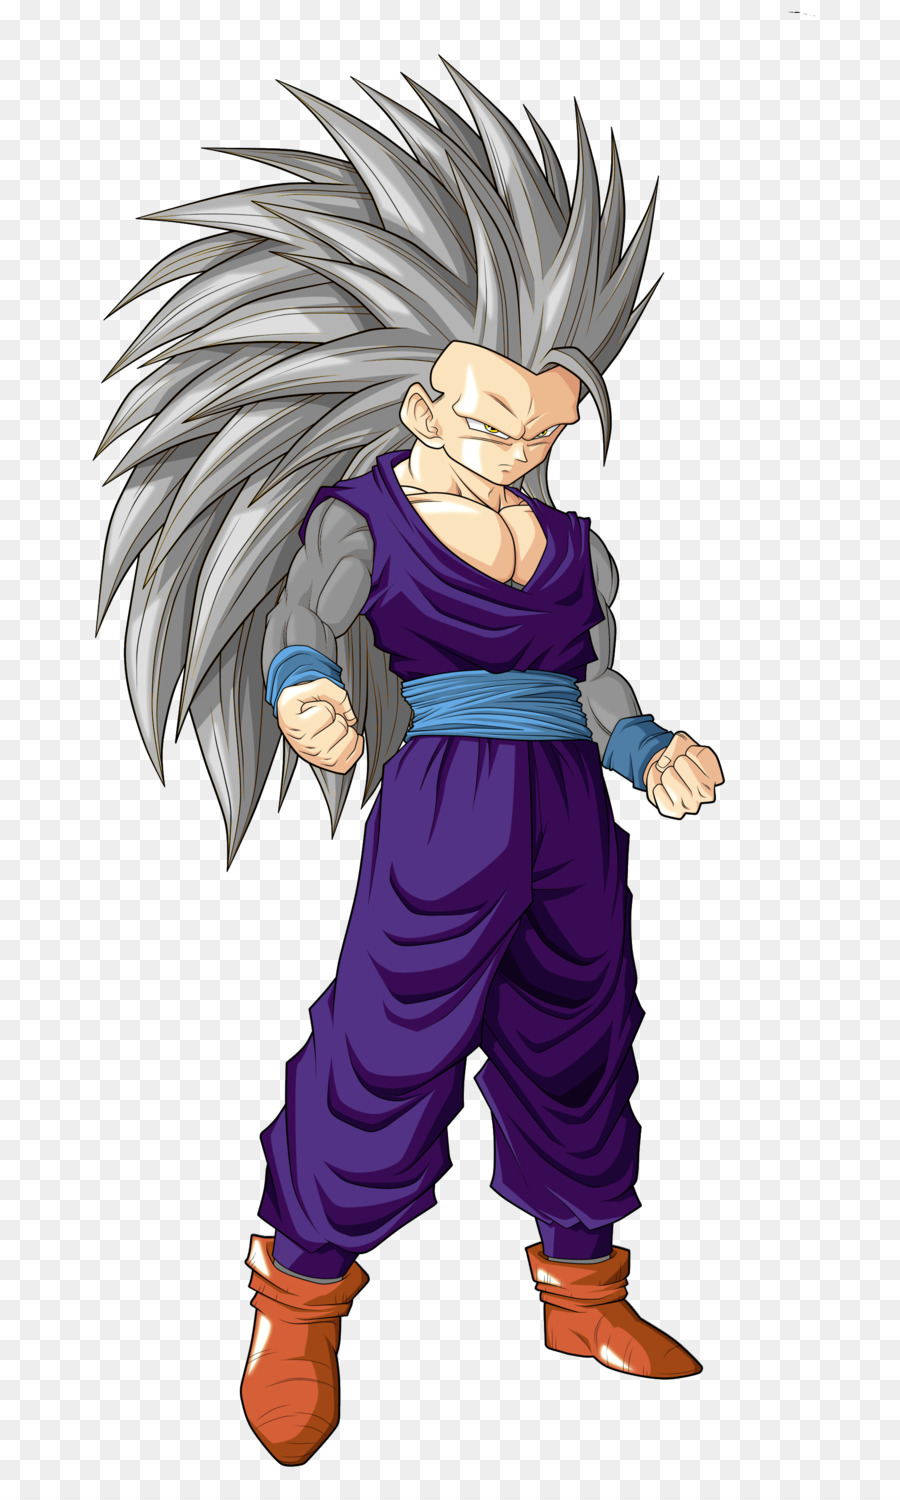 dragonball-z-teen-picture